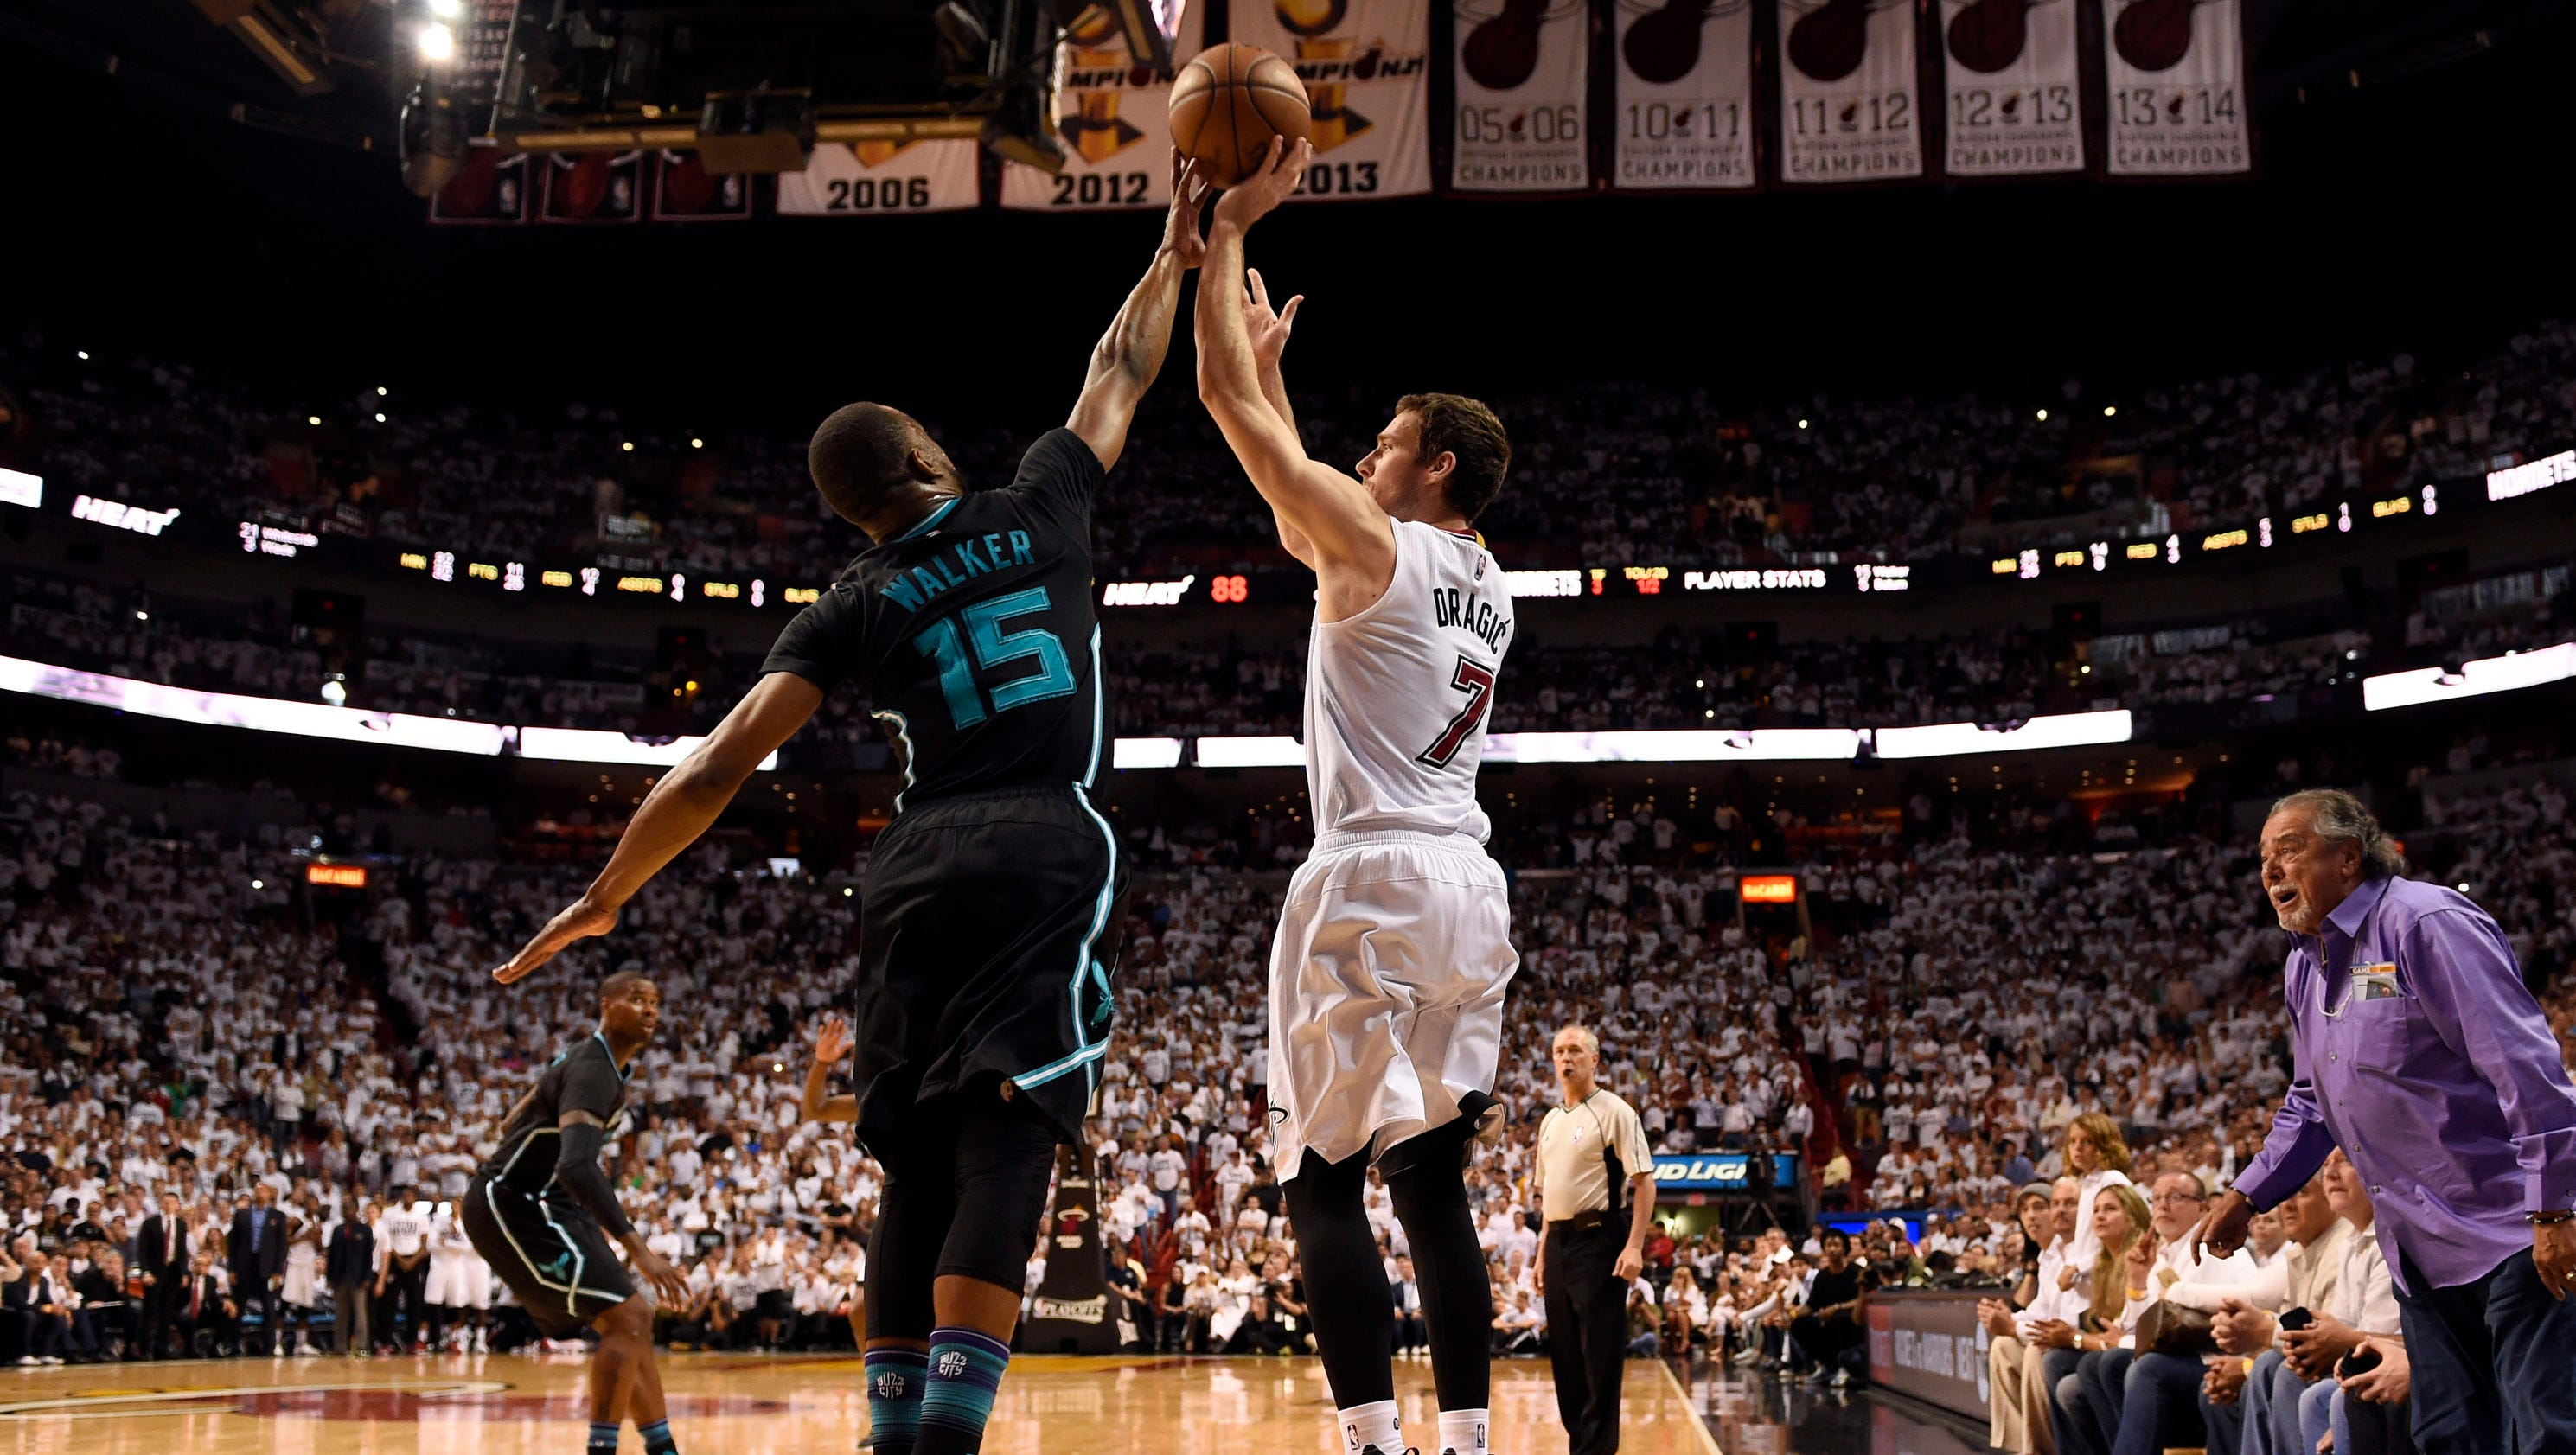 635973966470421050-usp-nba--playoffs-charlotte-hornets-at-miami-heat.1